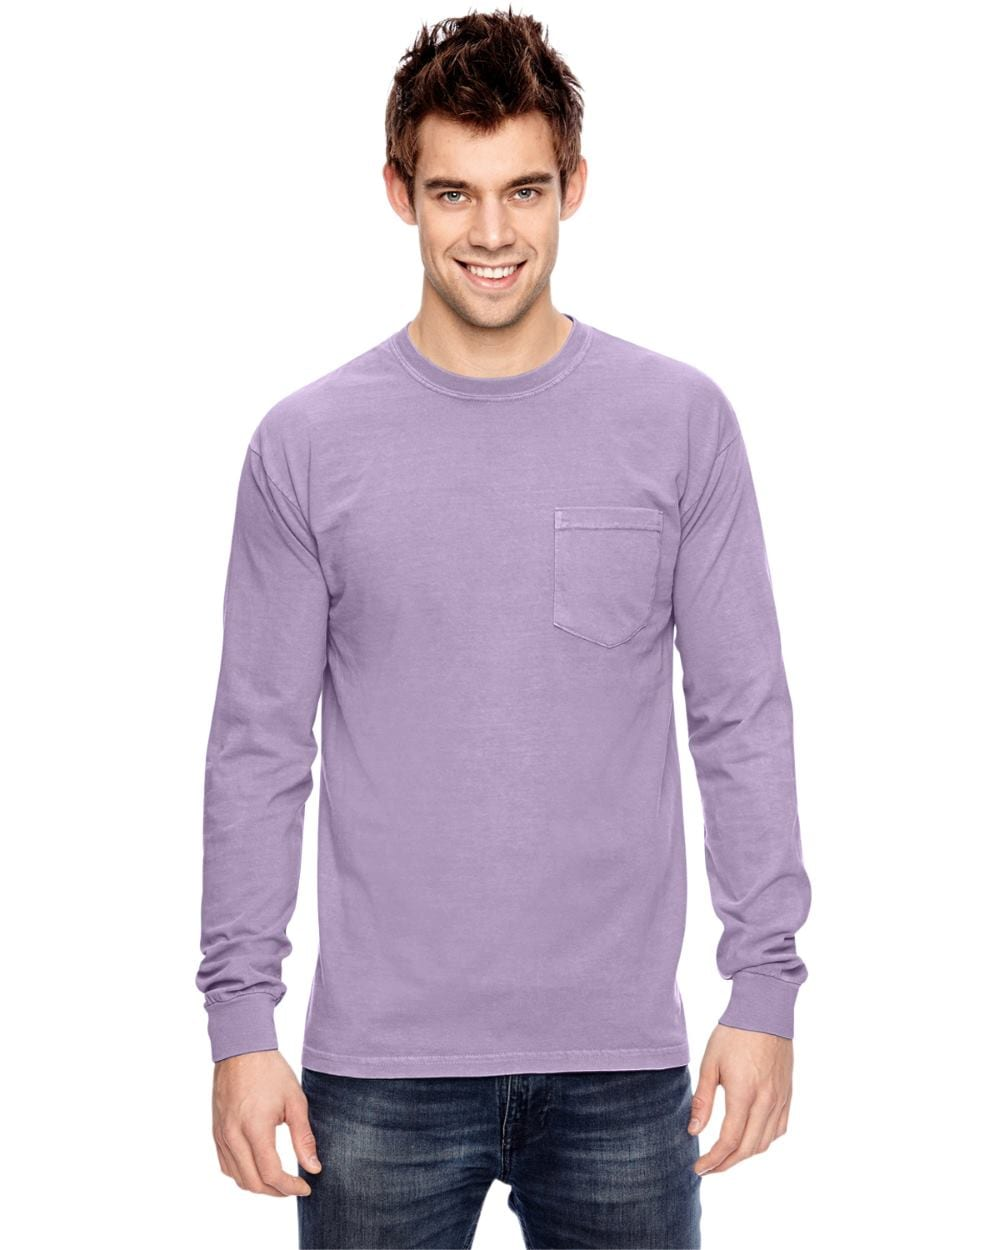 add94520 comfort colors c4410 heavyweight RS custom long sleeve pocket t shirt orchid